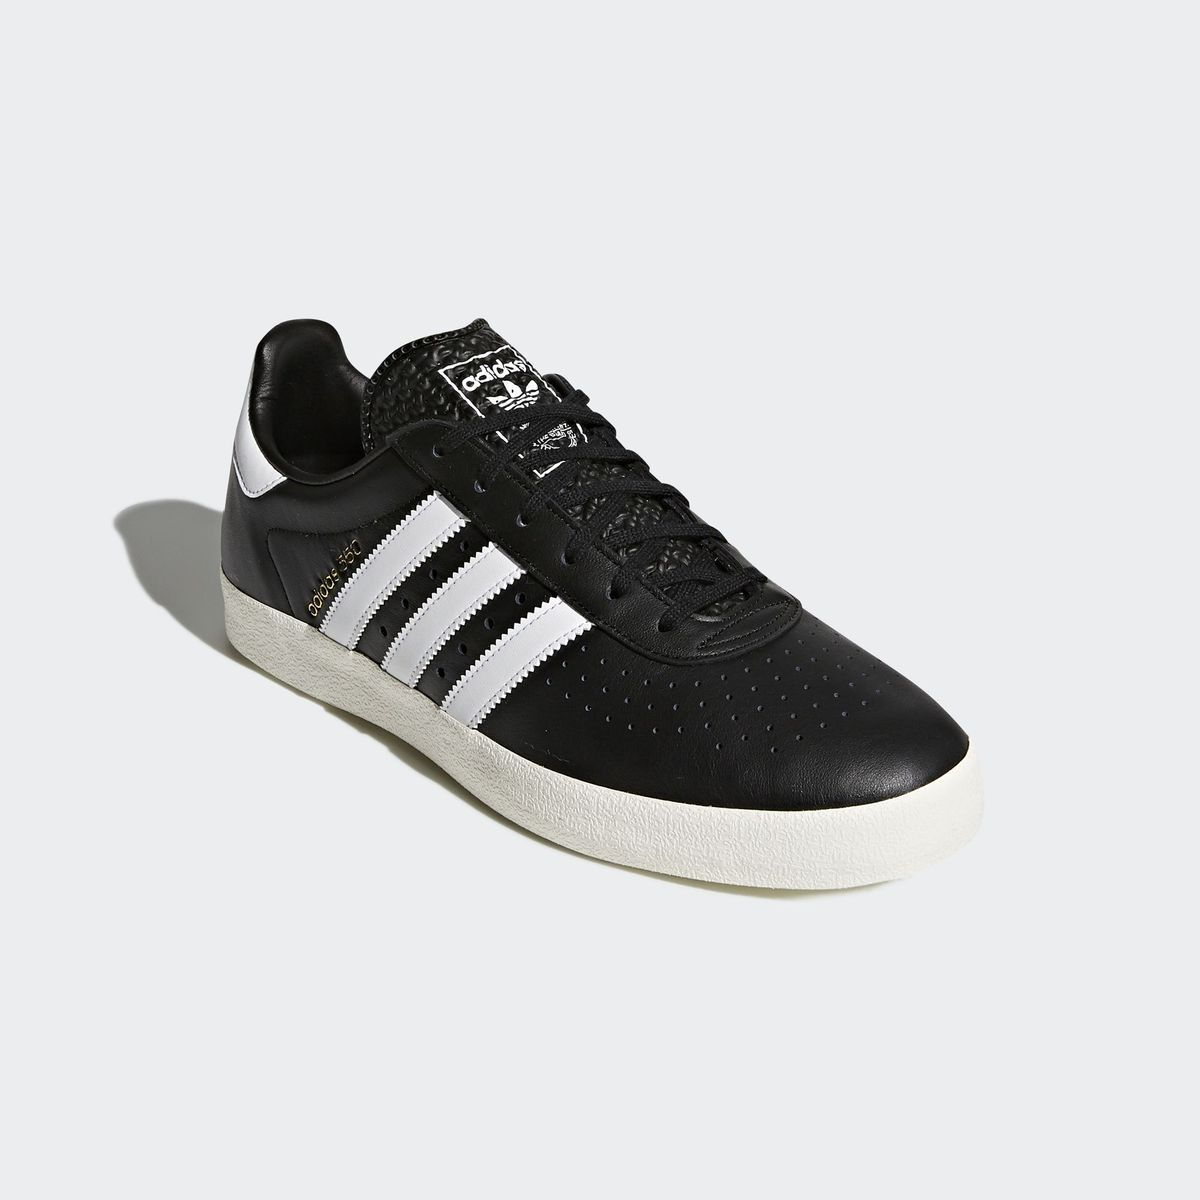 adidas chaussures basse